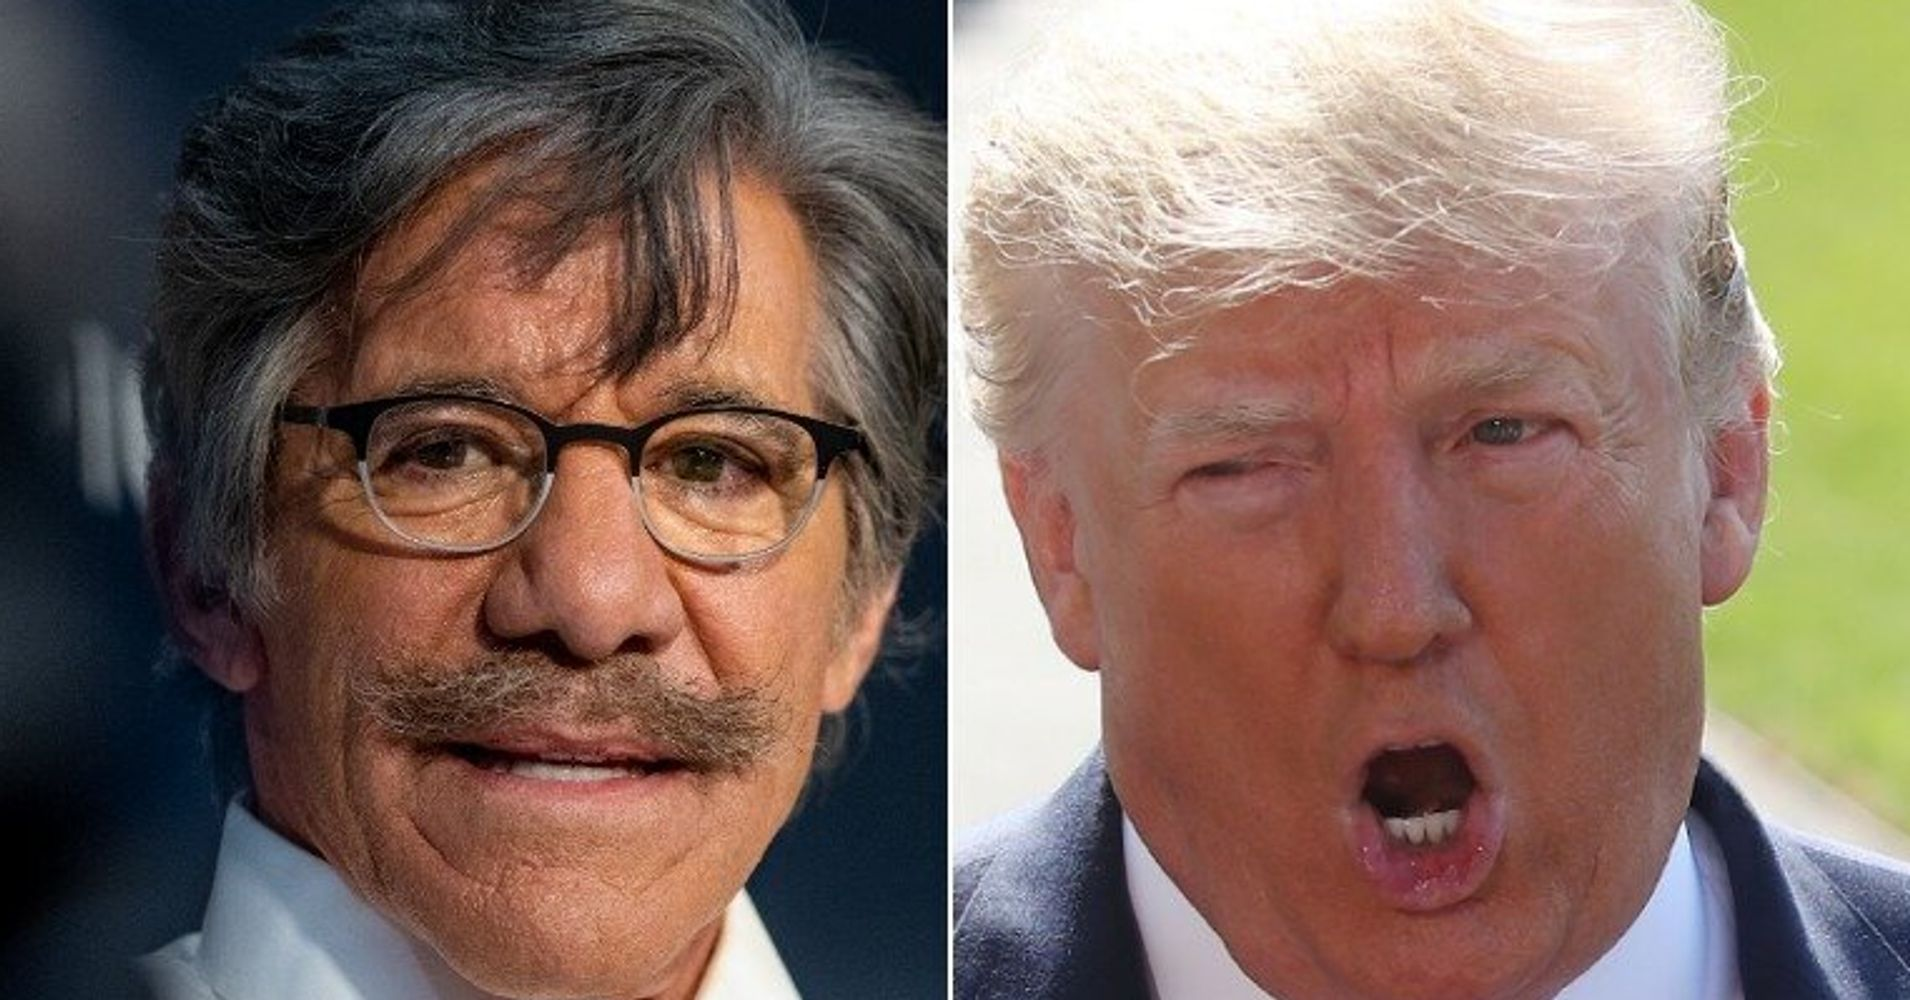 Westlake Legal Group 5d2c0d622400009d179357d1 Geraldo Rivera Launches Tone-Deaf Defense Of 'My Friend' Trump After Racist Rant